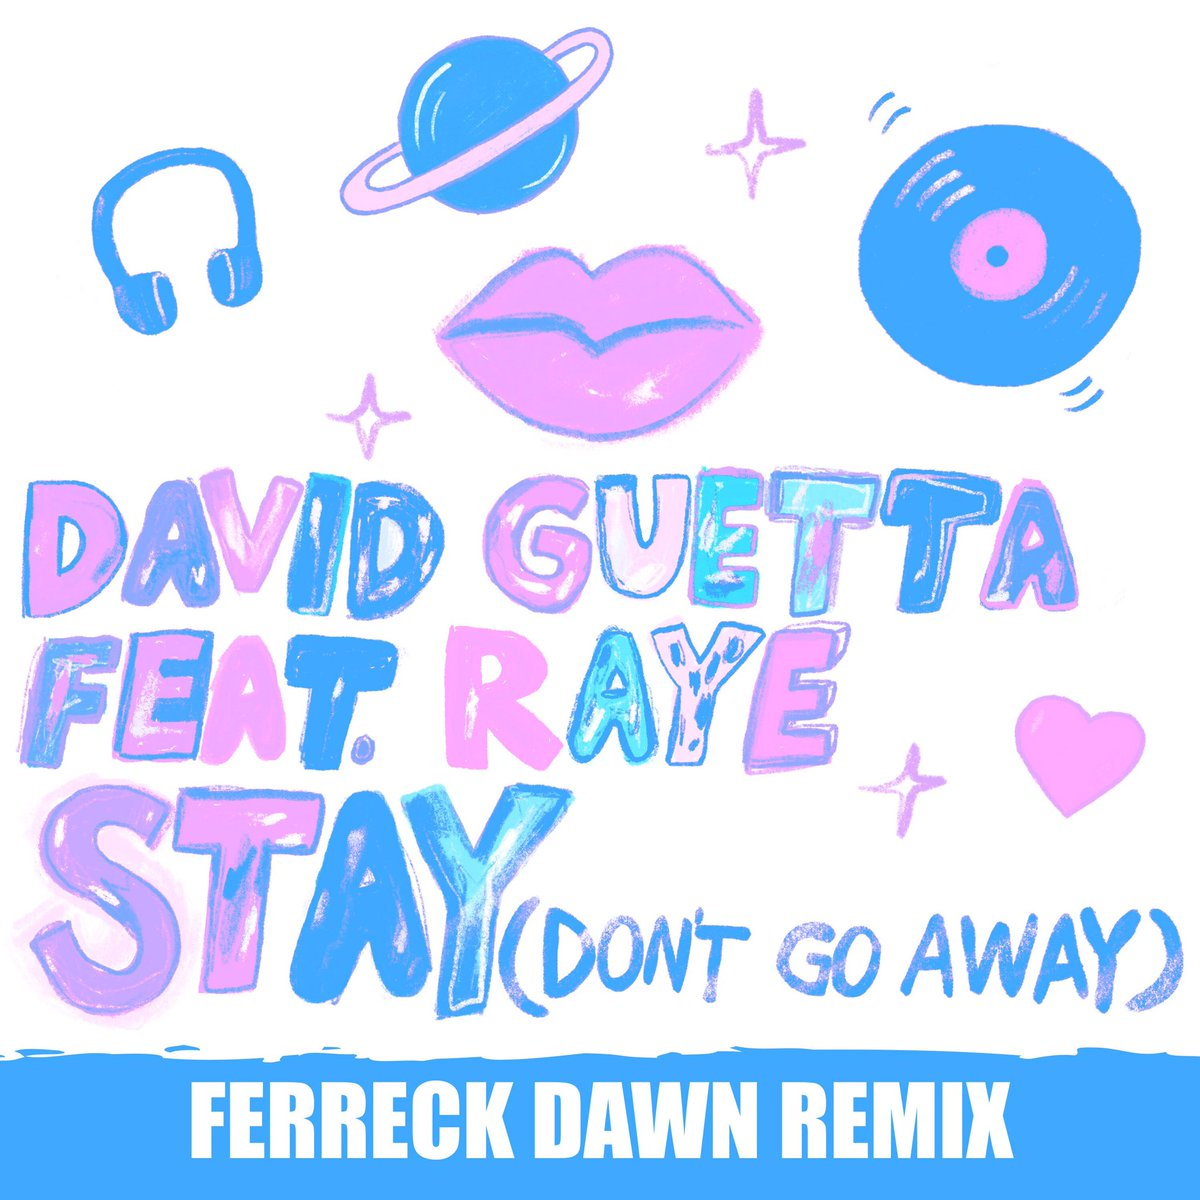 RT @FerreckDawn: My remix of @davidguetta - Stay is out now! Check it here: https://t.co/gykmgFPkes ???????? https://t.co/geBjLTG7kH